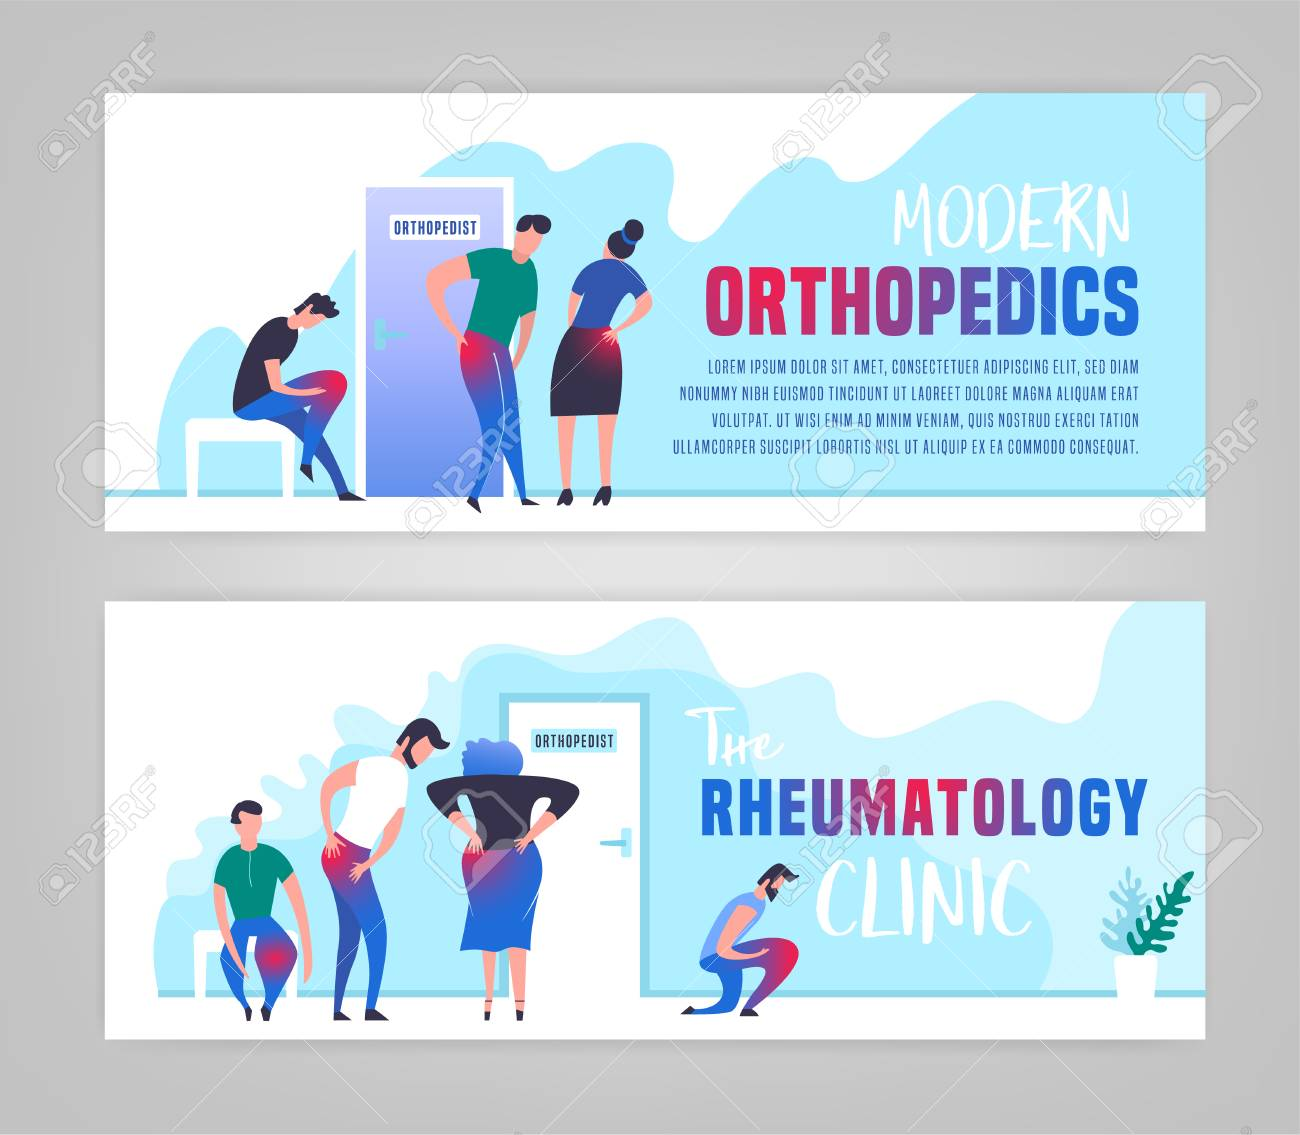 Osteoarthritis illustration in modern vanguard simplistic style. Hip and knee bones injury. Orthopedic clinic. Editable vector in bright green, blue, pink colors. Medical, healthcare, science concept. - 123182679